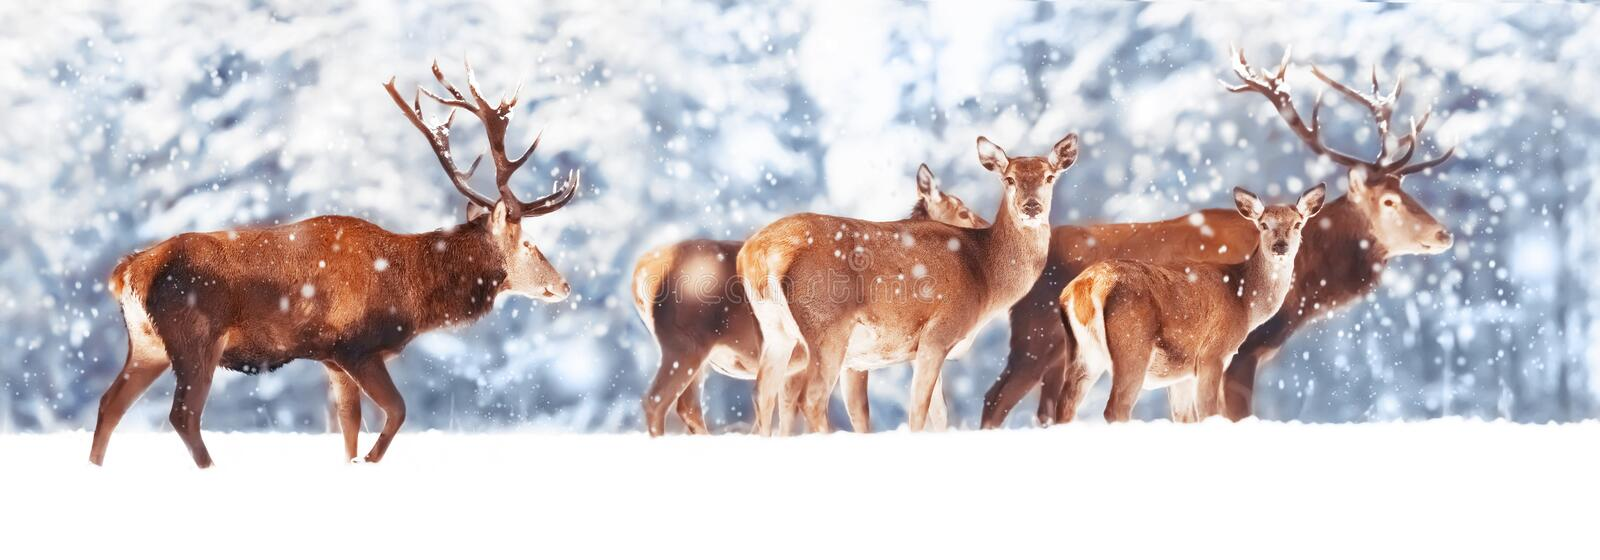 A noble deer with females in the herd against the background of a beautiful winter snow forest. Artistic winter landscape. Christmas photography. Winter stock photography